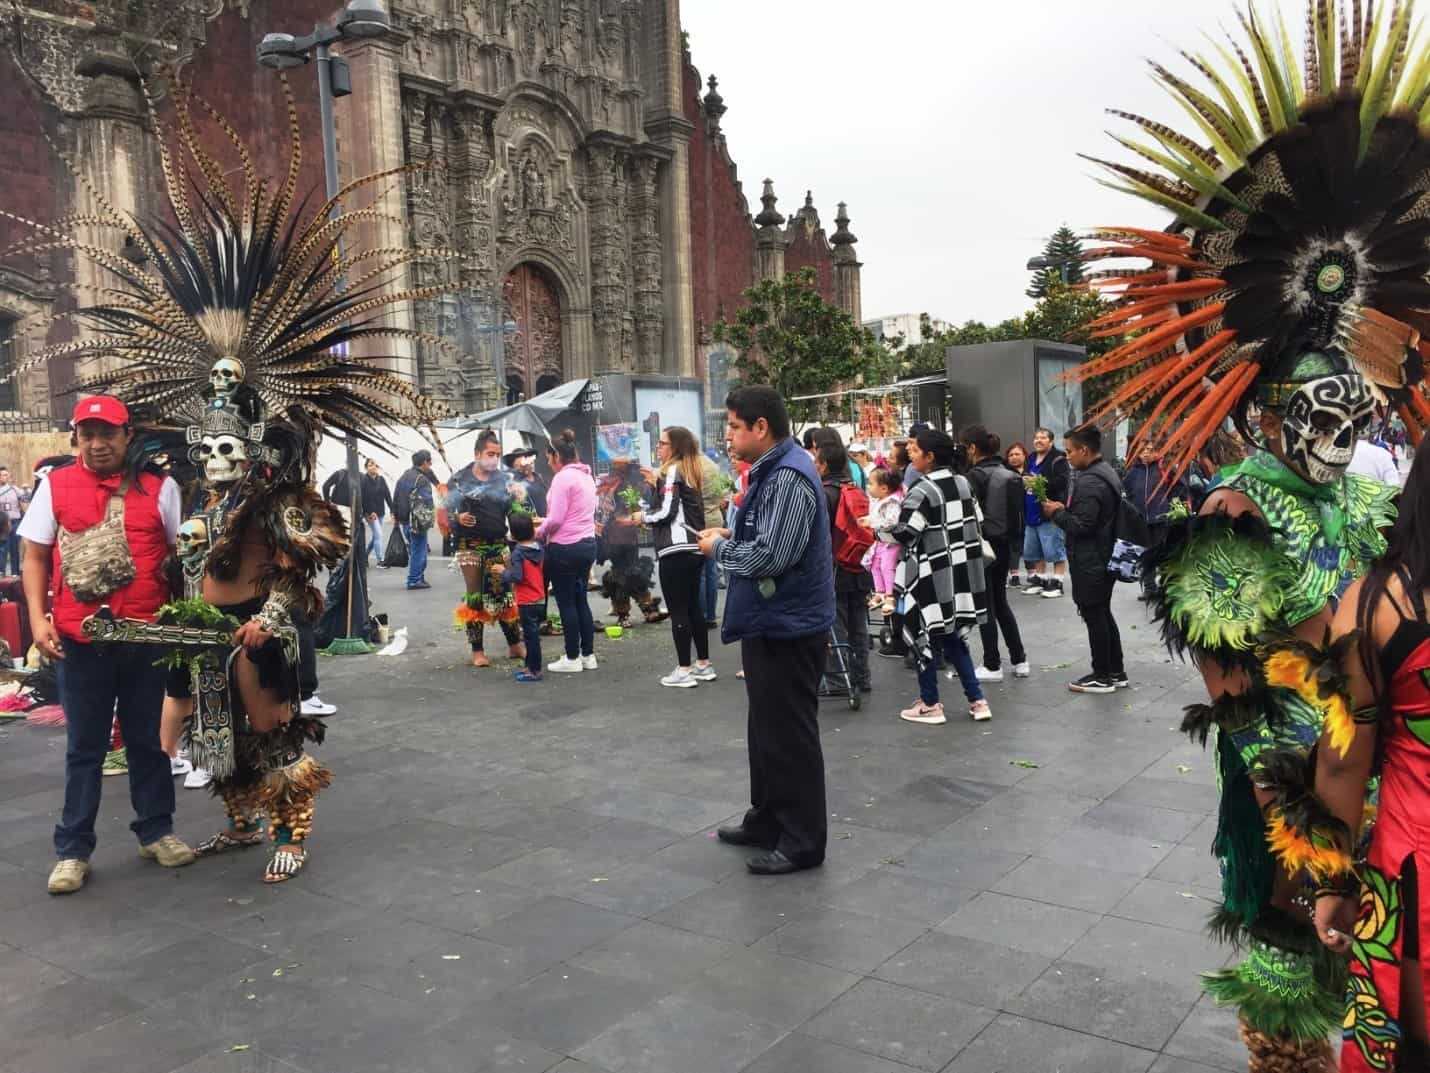 People in Aztec headdresses and death-heads - A very full first day in Mexico City